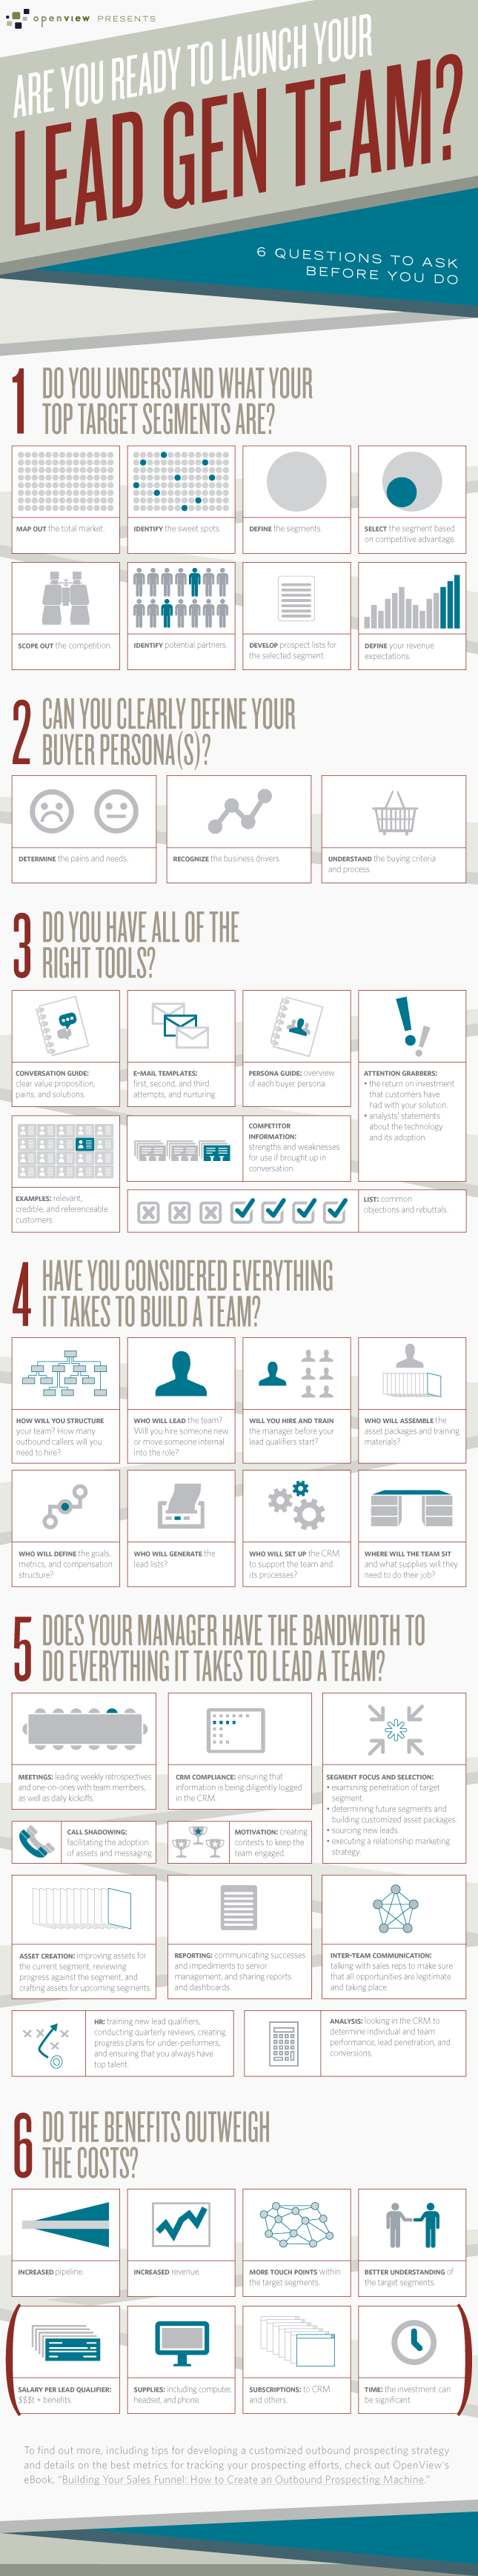 Infographic: Are You Ready to Launch a Lead Generation Team? image openview infographic lead gen team